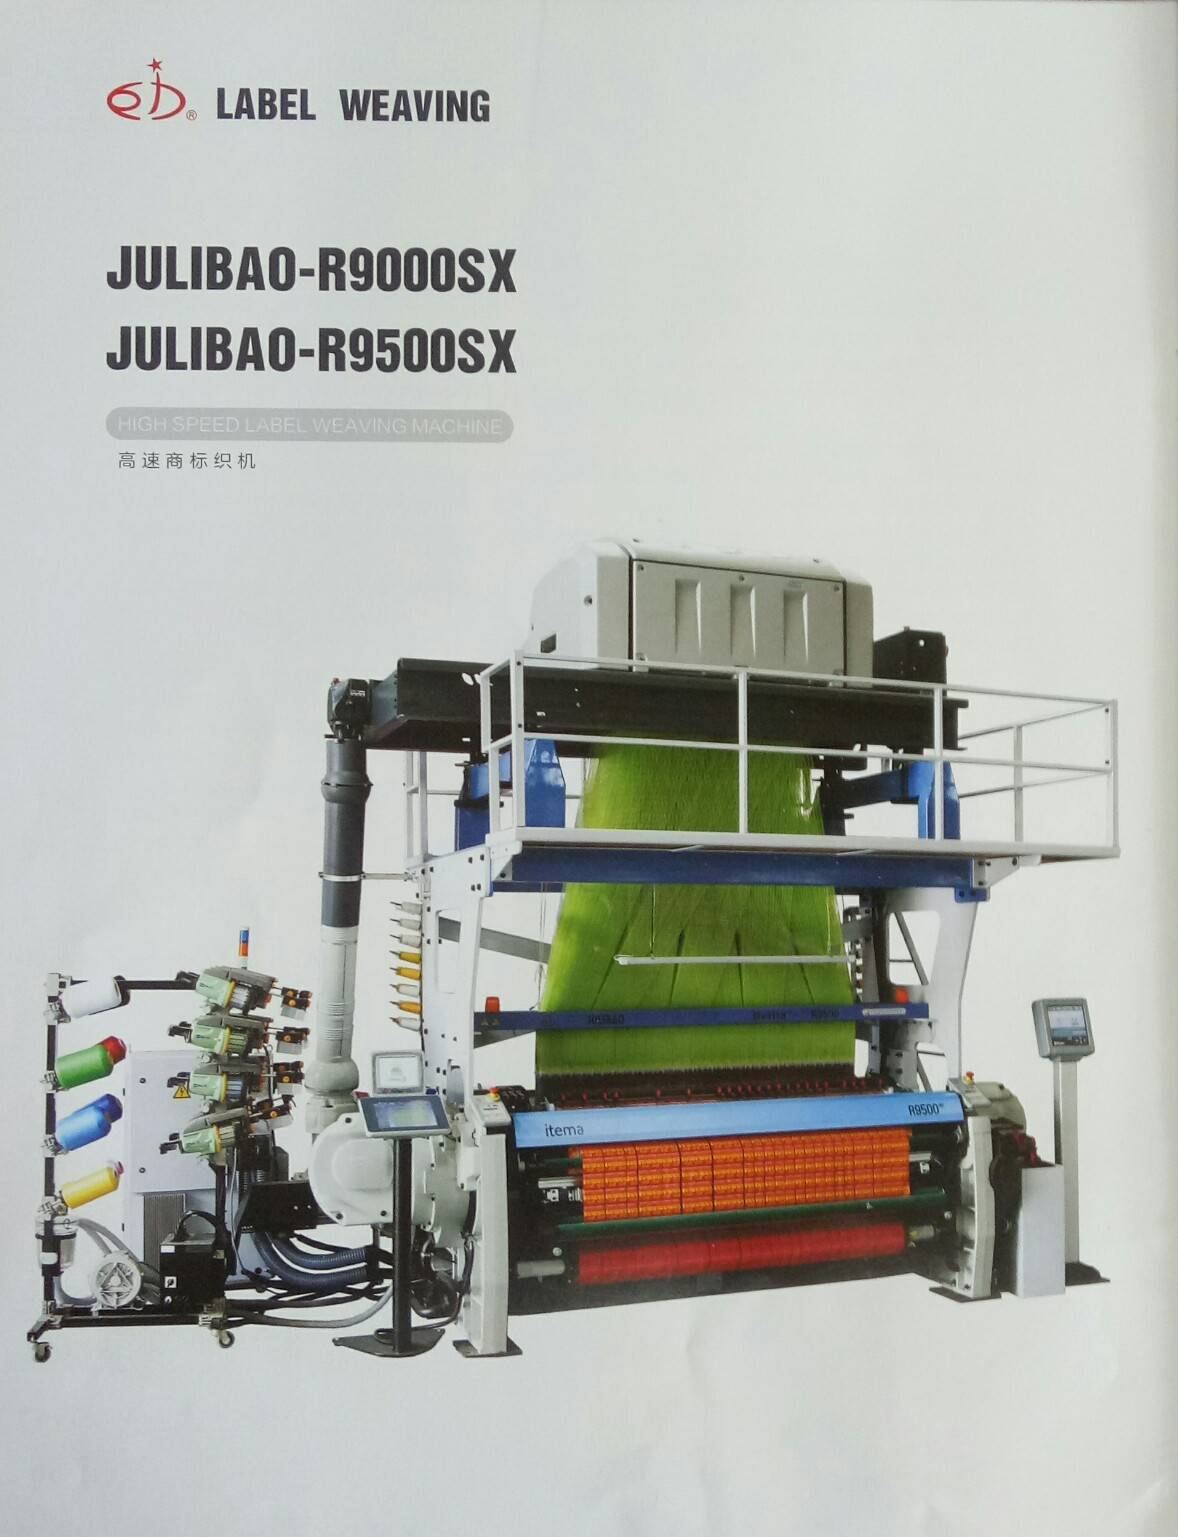 JULIBAO-R9000/9500SX high speed label weaving machine